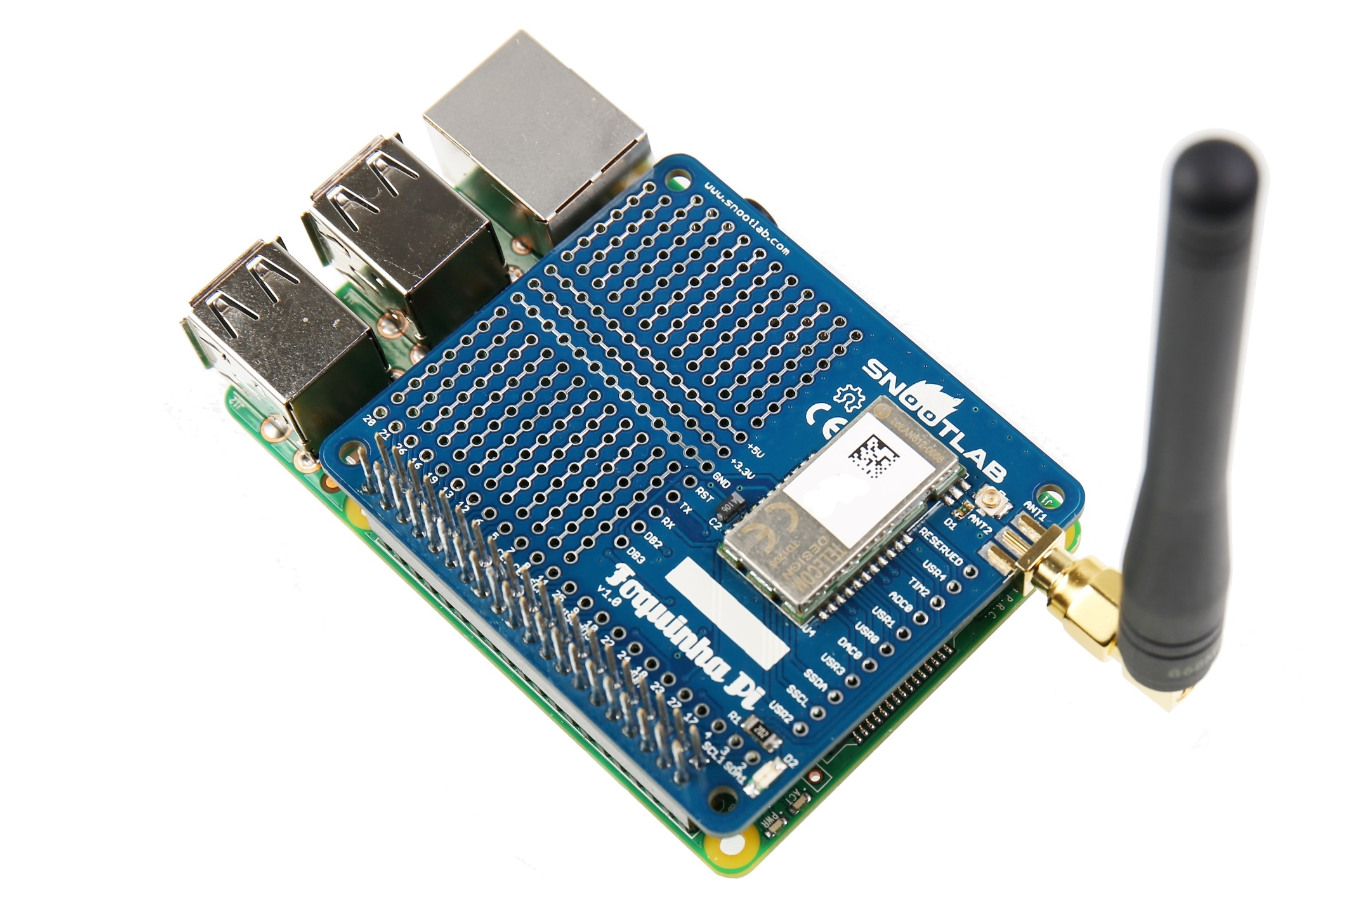 Foquinha Pi Sigfox Partner Network The Iot Solution Book Raspberry Shield For Dummies Experimental Board Analog Digital Make Prototypes With Technology On All Versions